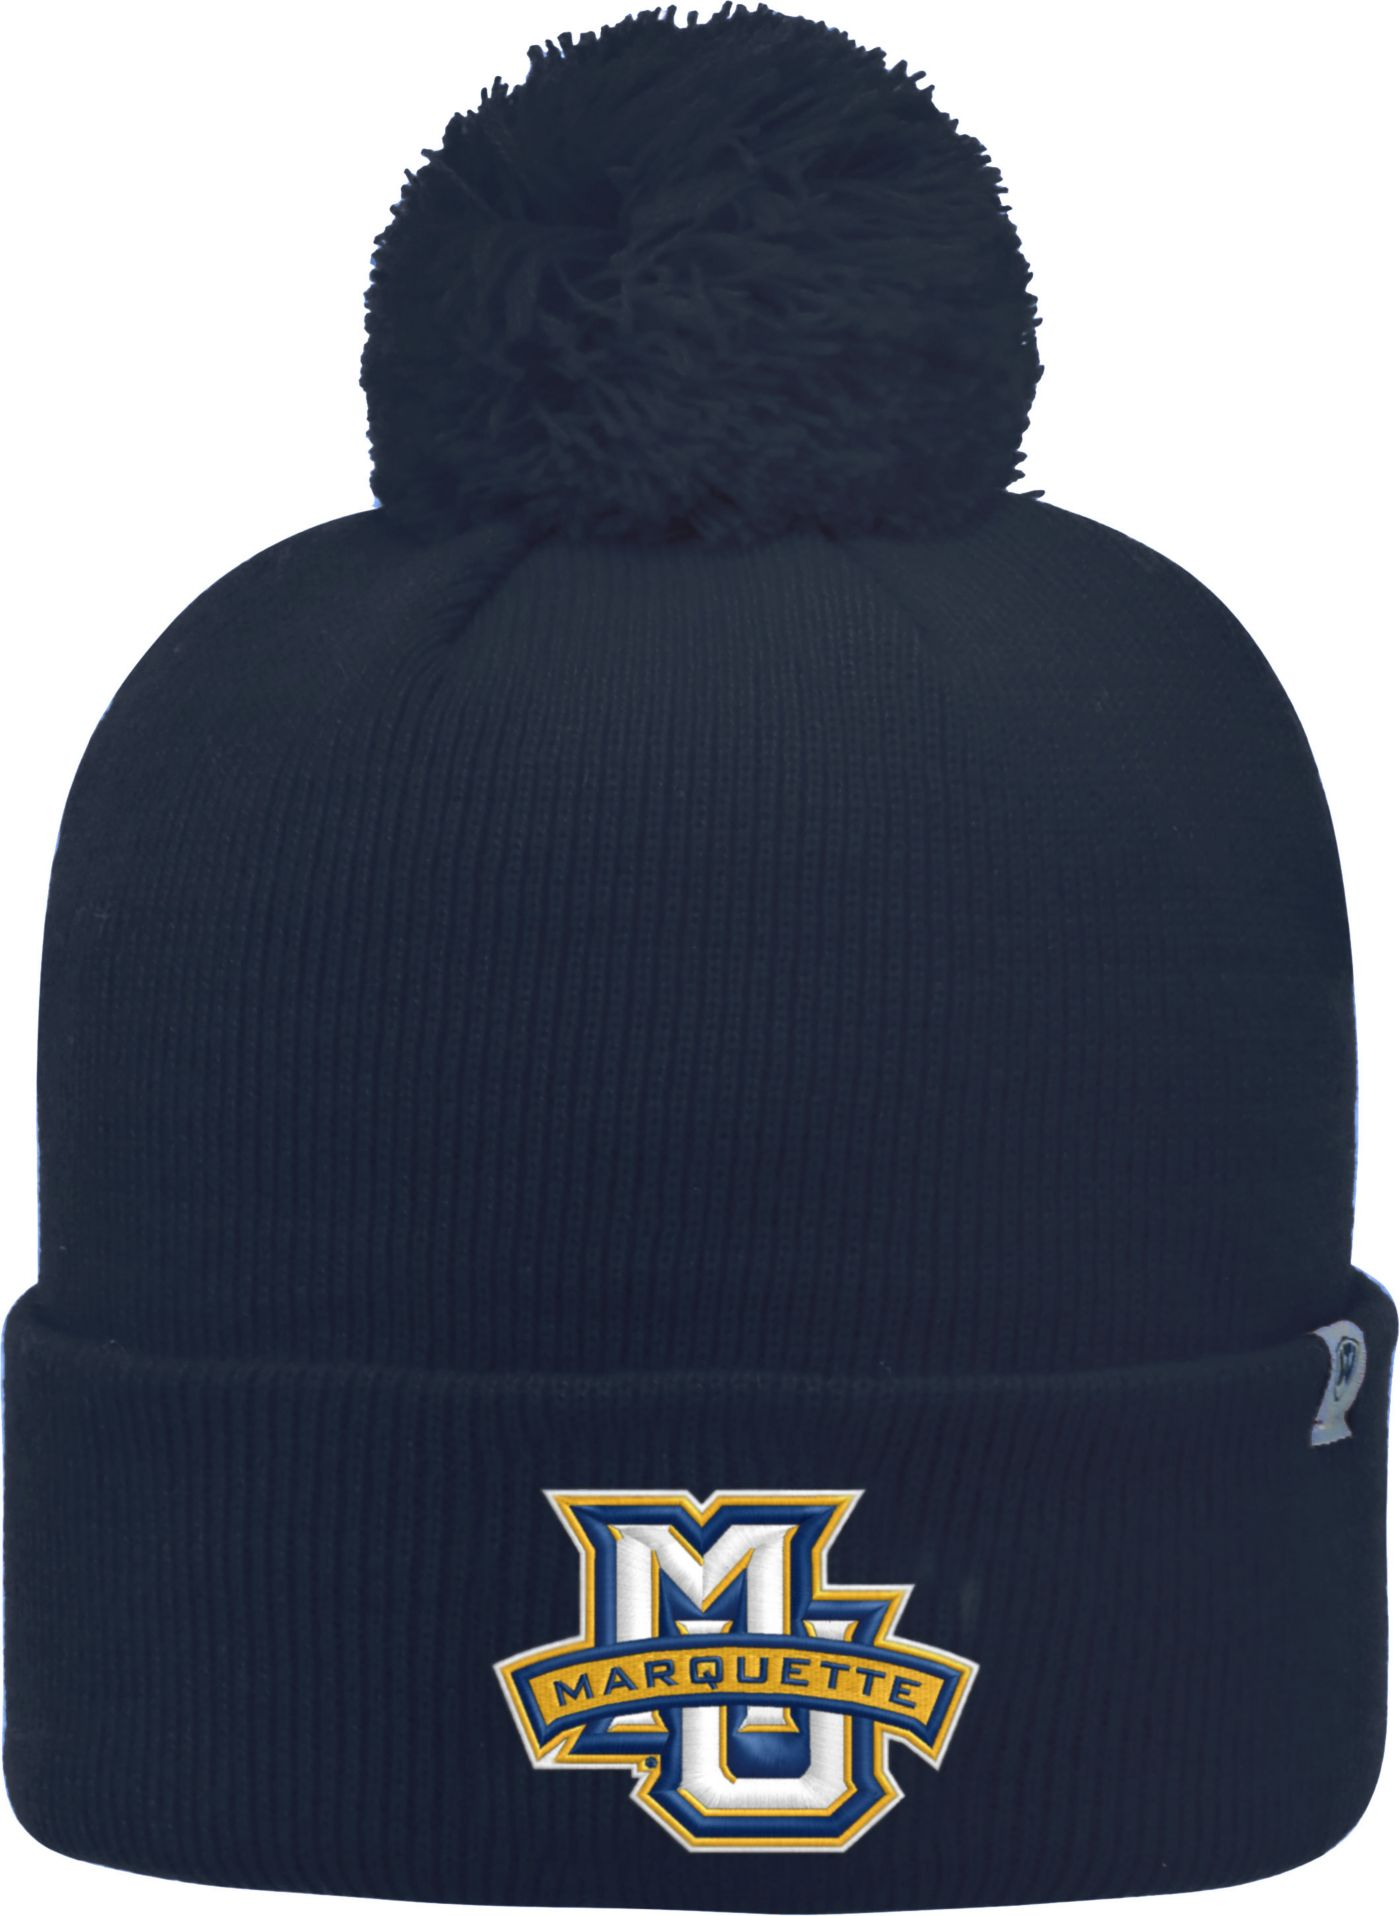 Top of the World Men's Marquette Golden Eagles Blue Pom Knit Beanie